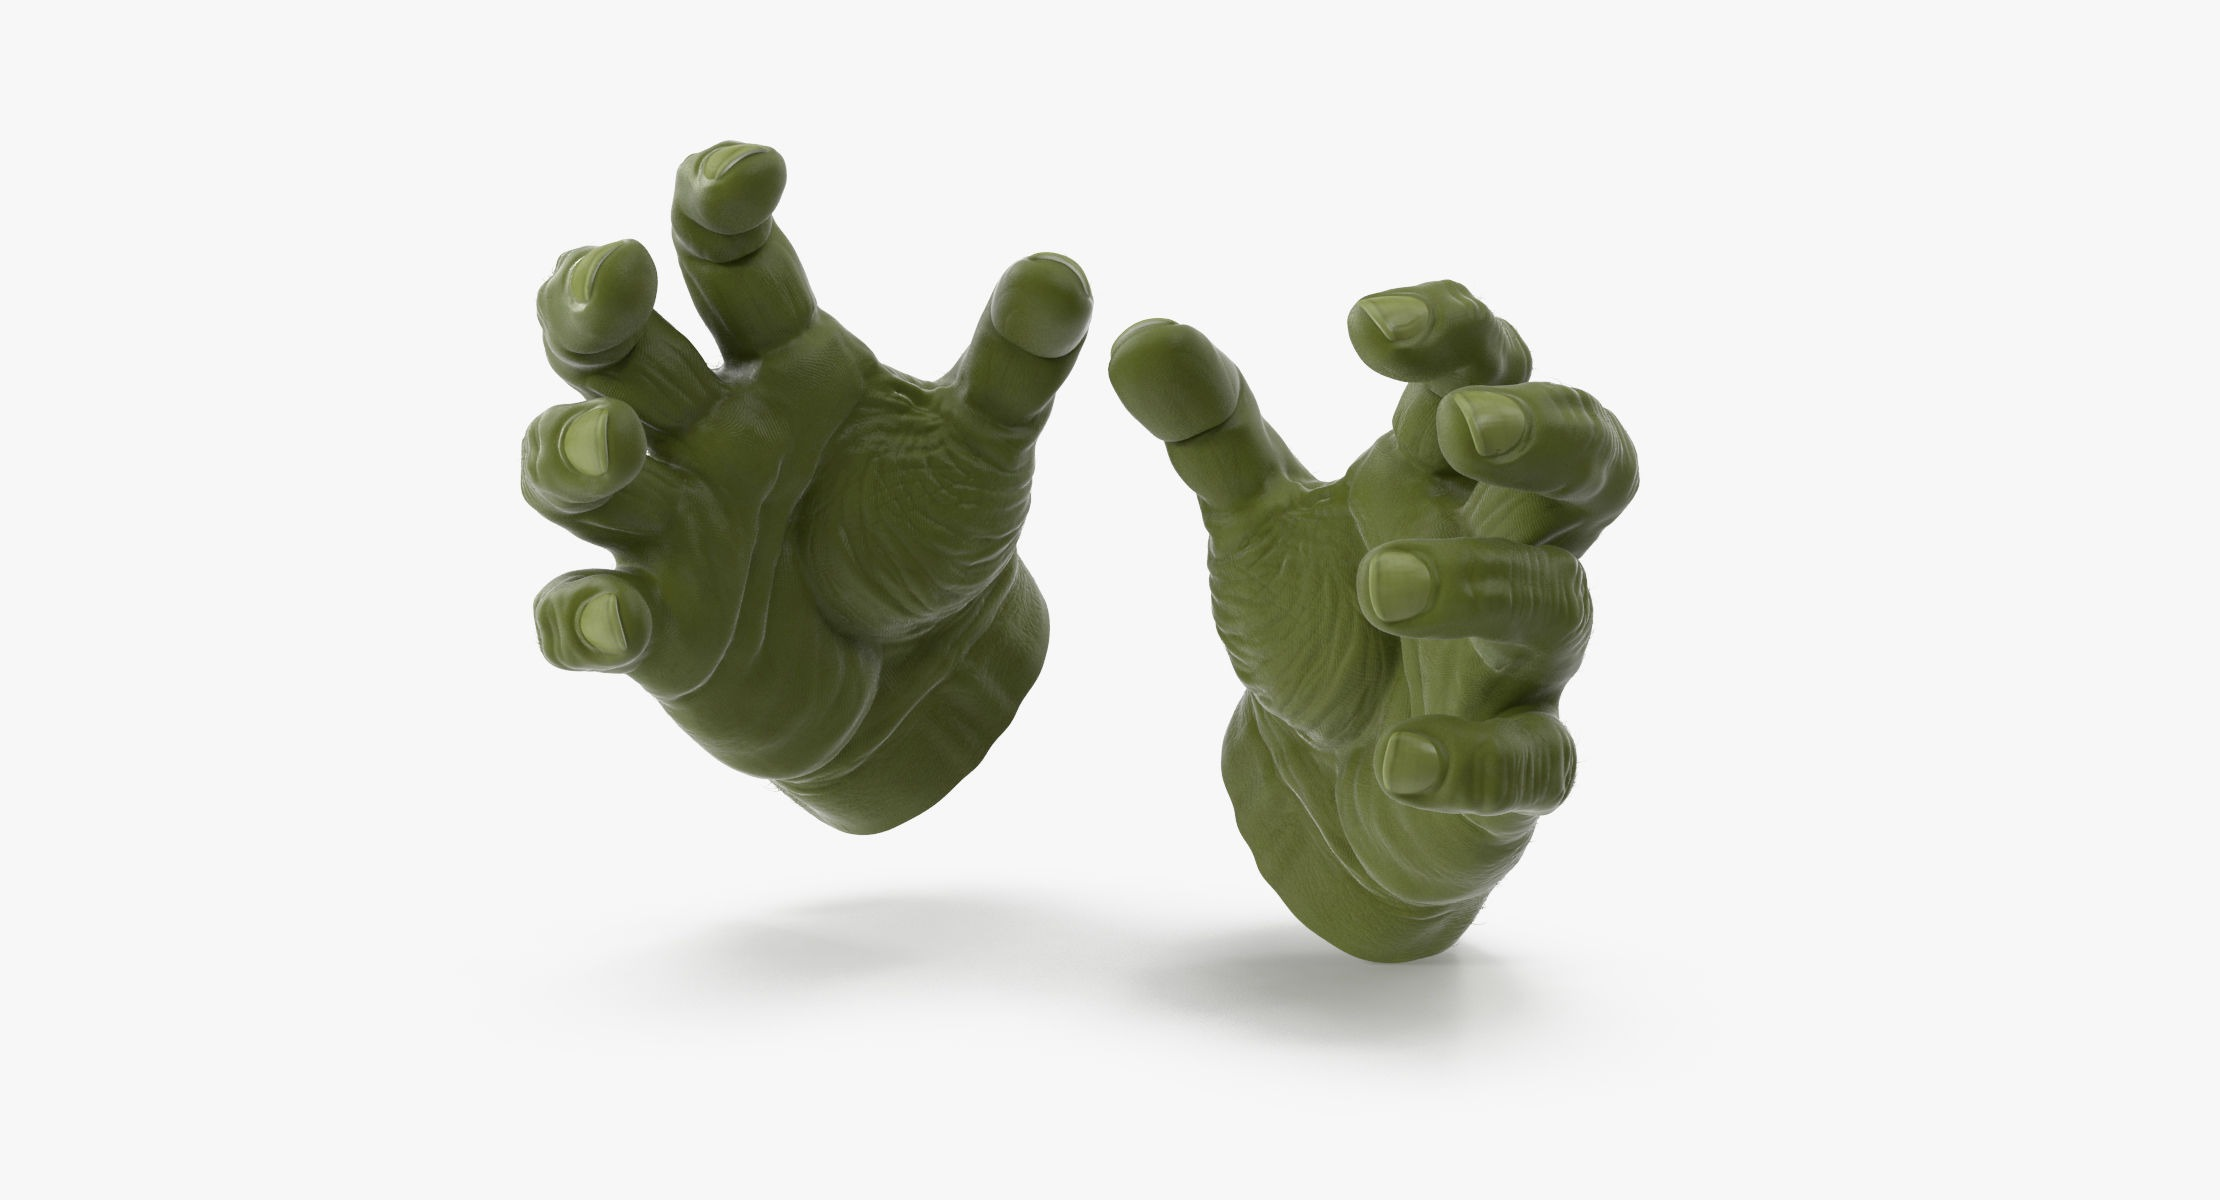 Hulk Hands Open - reel 1